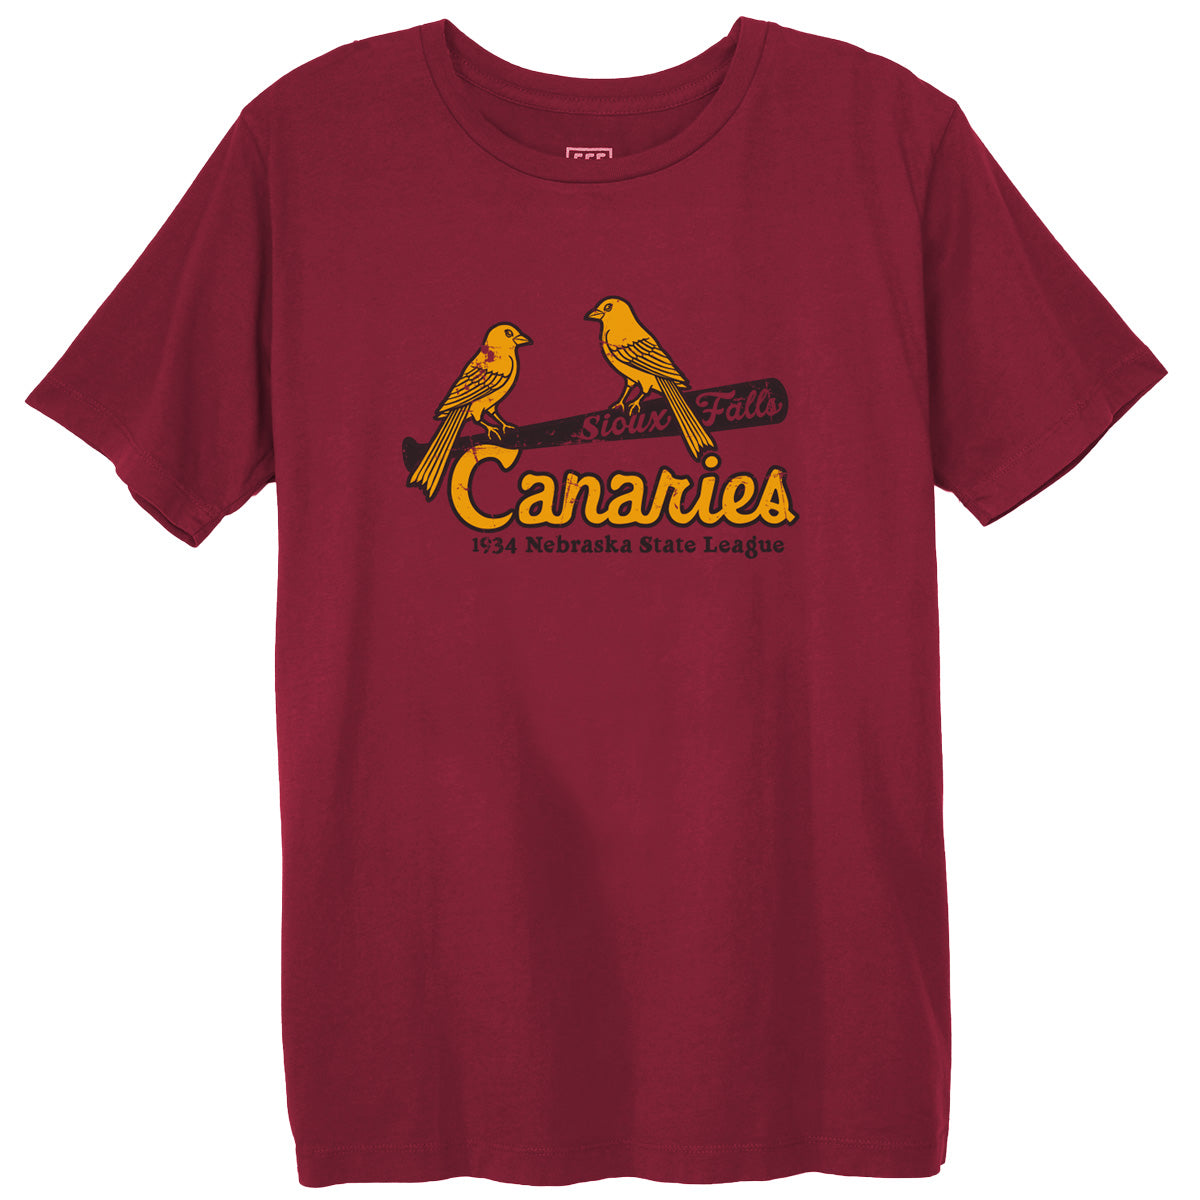 992b10559d1 Sioux Falls Canaries 1934 T-Shirt. EBBETS FIELD FLANNELS.  30. Login to  save this item